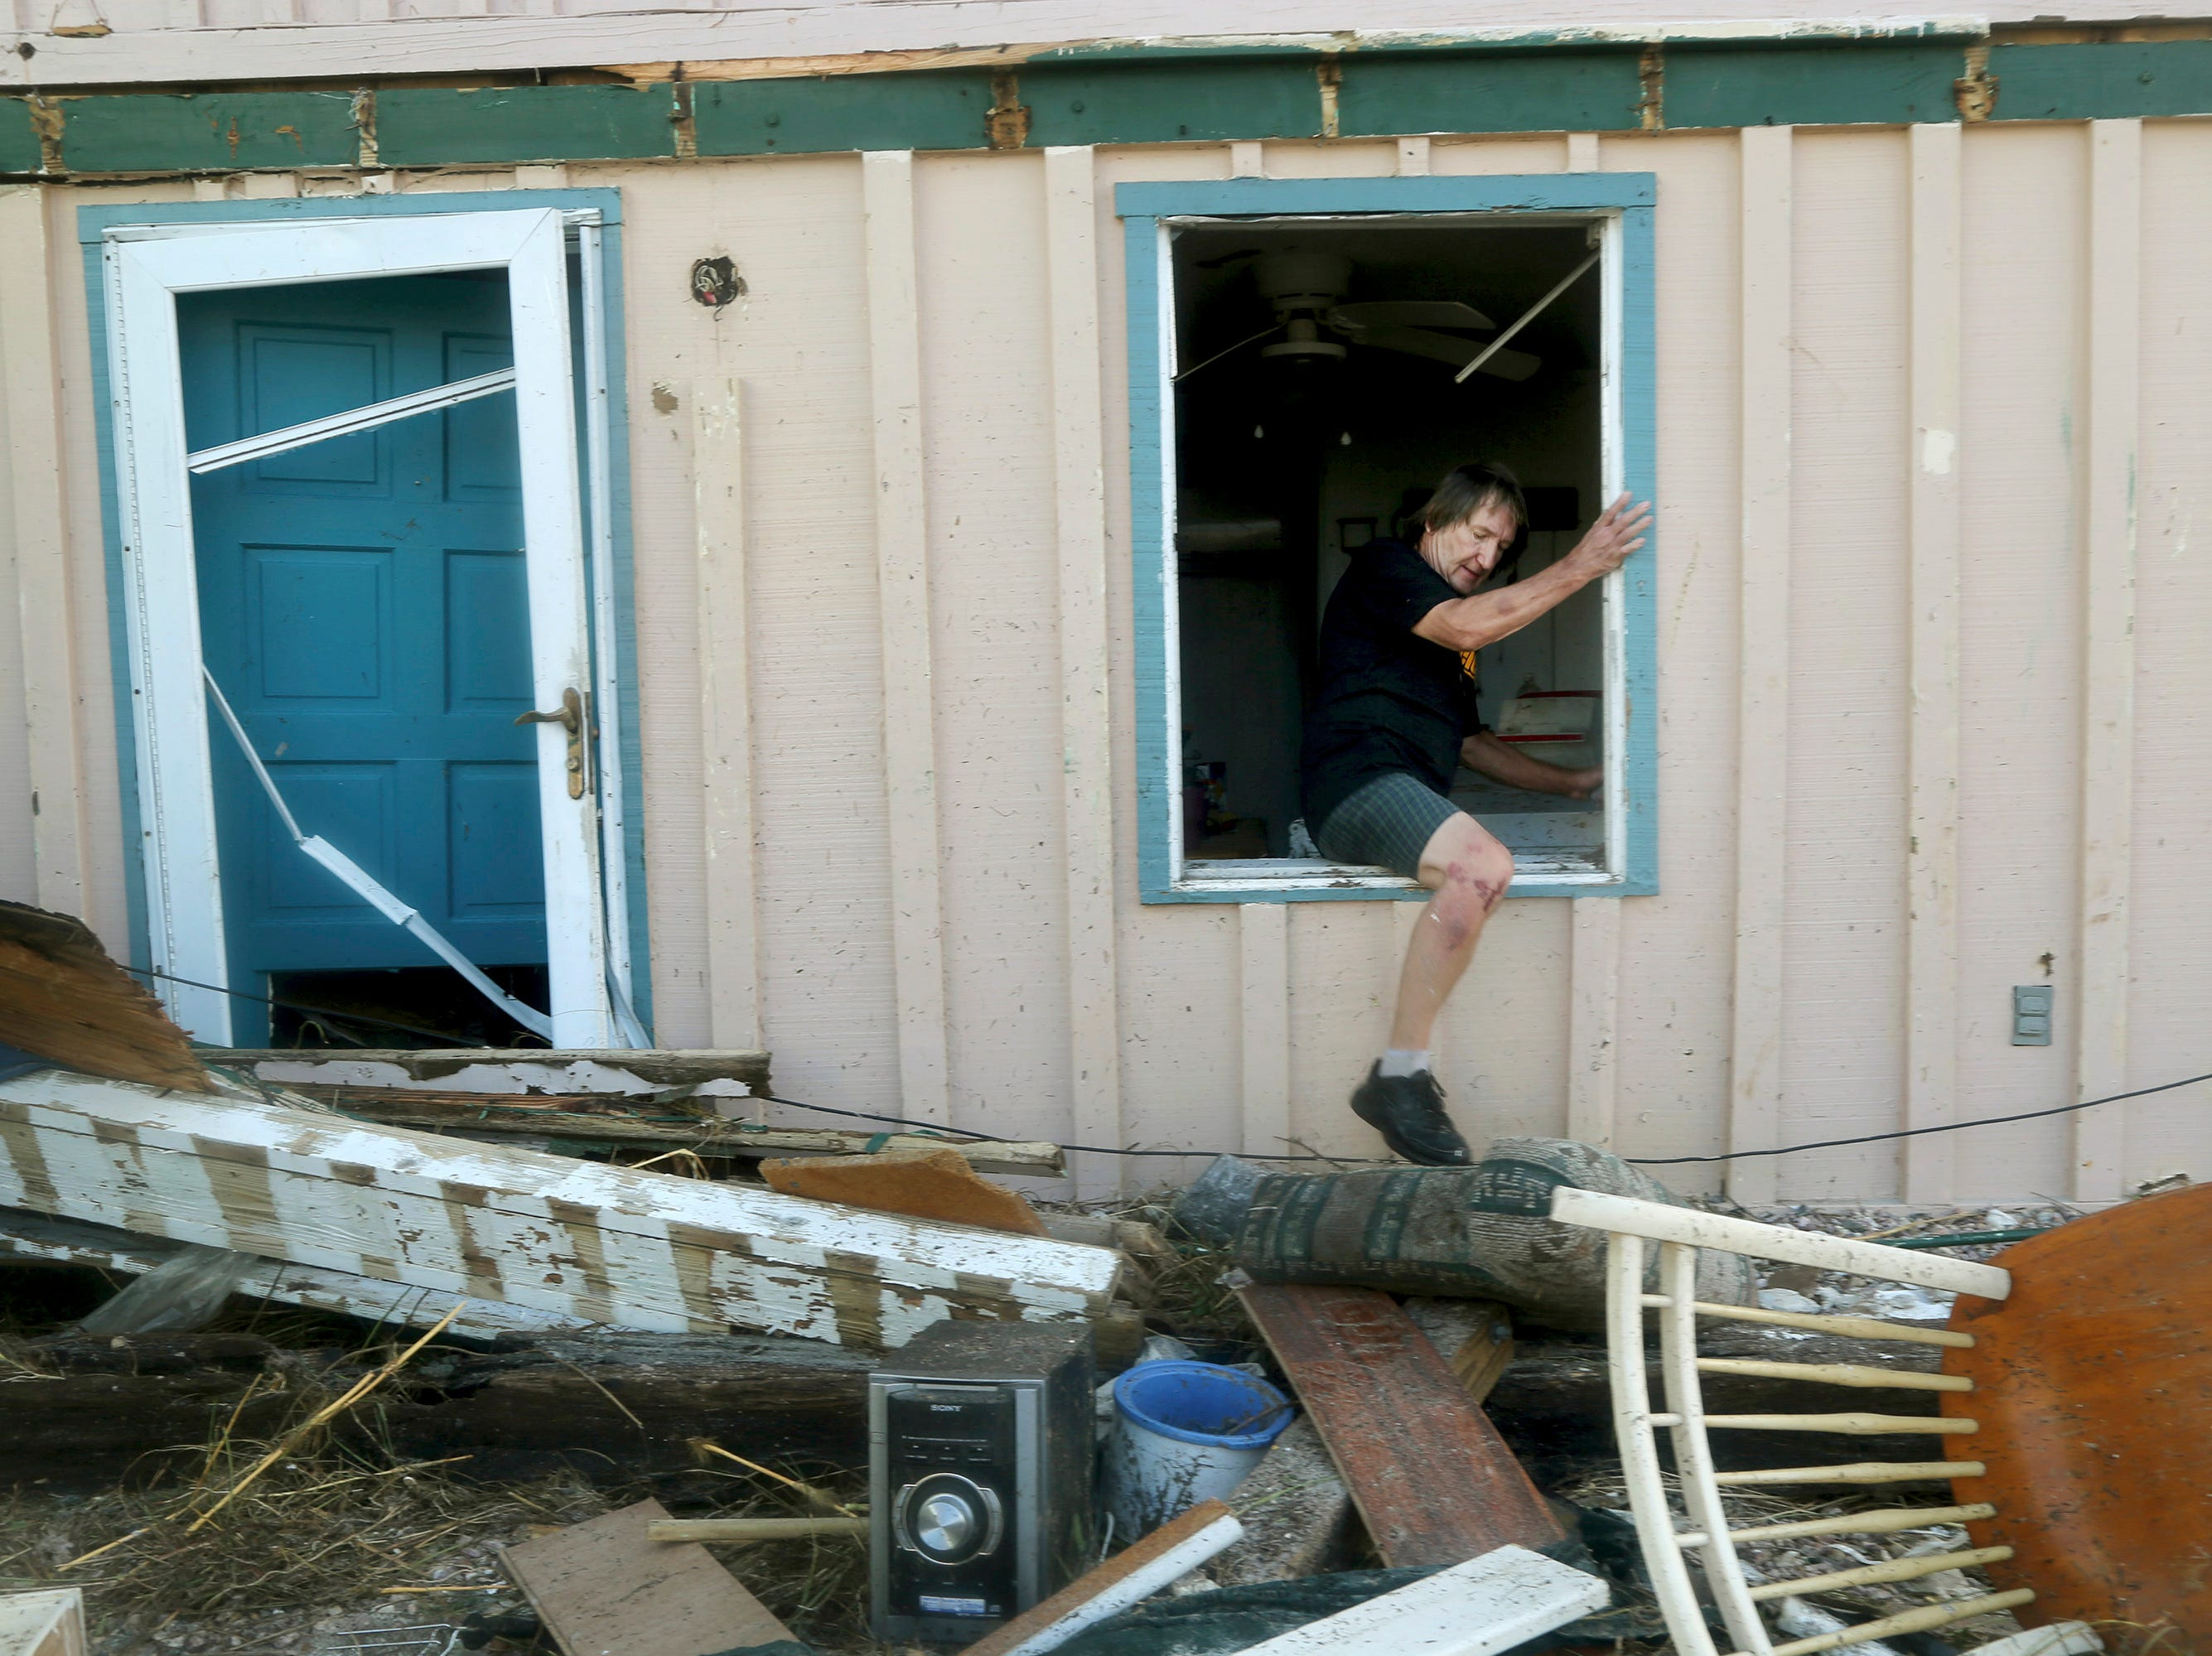 James Murphy emerges from what remains of his home on Thursday, Oct. 11, 2018, on a coastal stretch of Port St. Joe, Fla. The home was severely damaged by Hurricane Michael's violent storm surge and wind as it made landfall on Wednesday in the Florida Panhandle. (Douglas R. Clifford/Tampa Bay Times via AP)